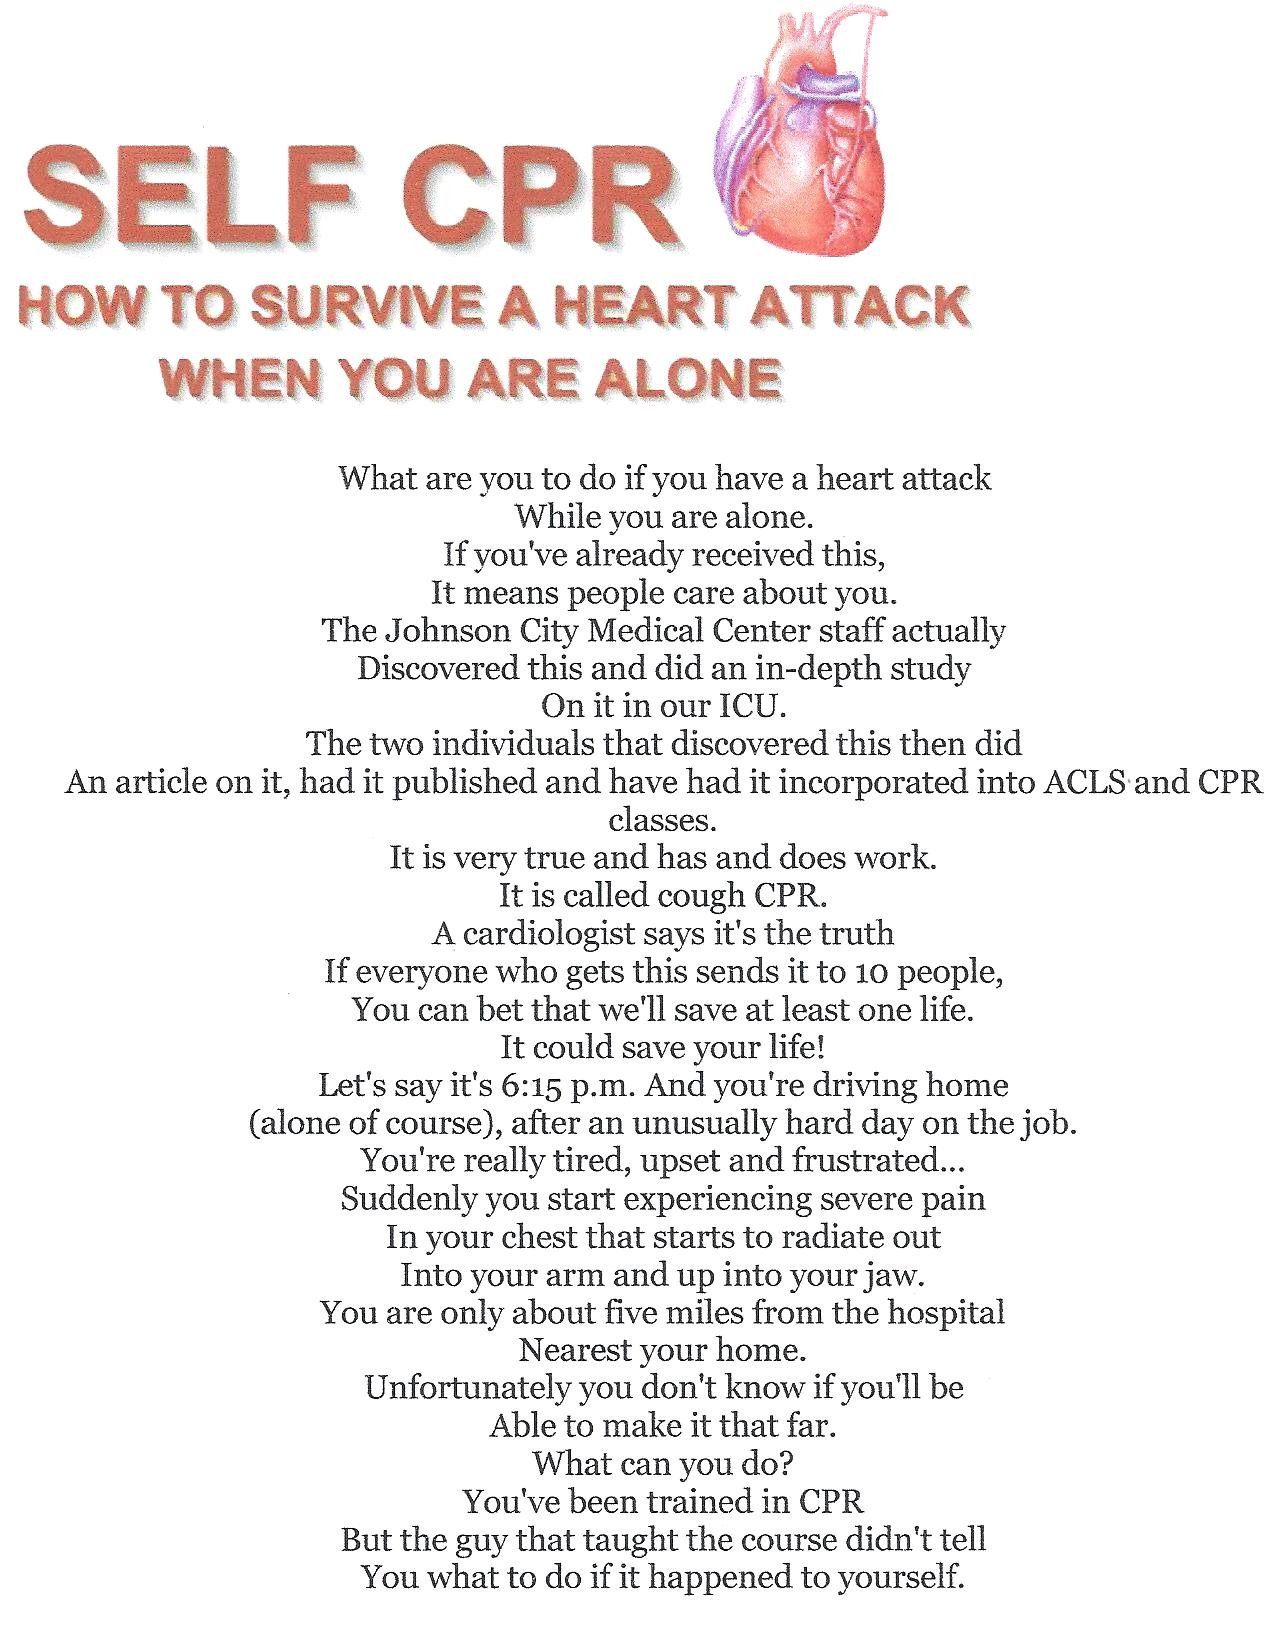 What Are You To Do If You Have A Heart Attack While Alone